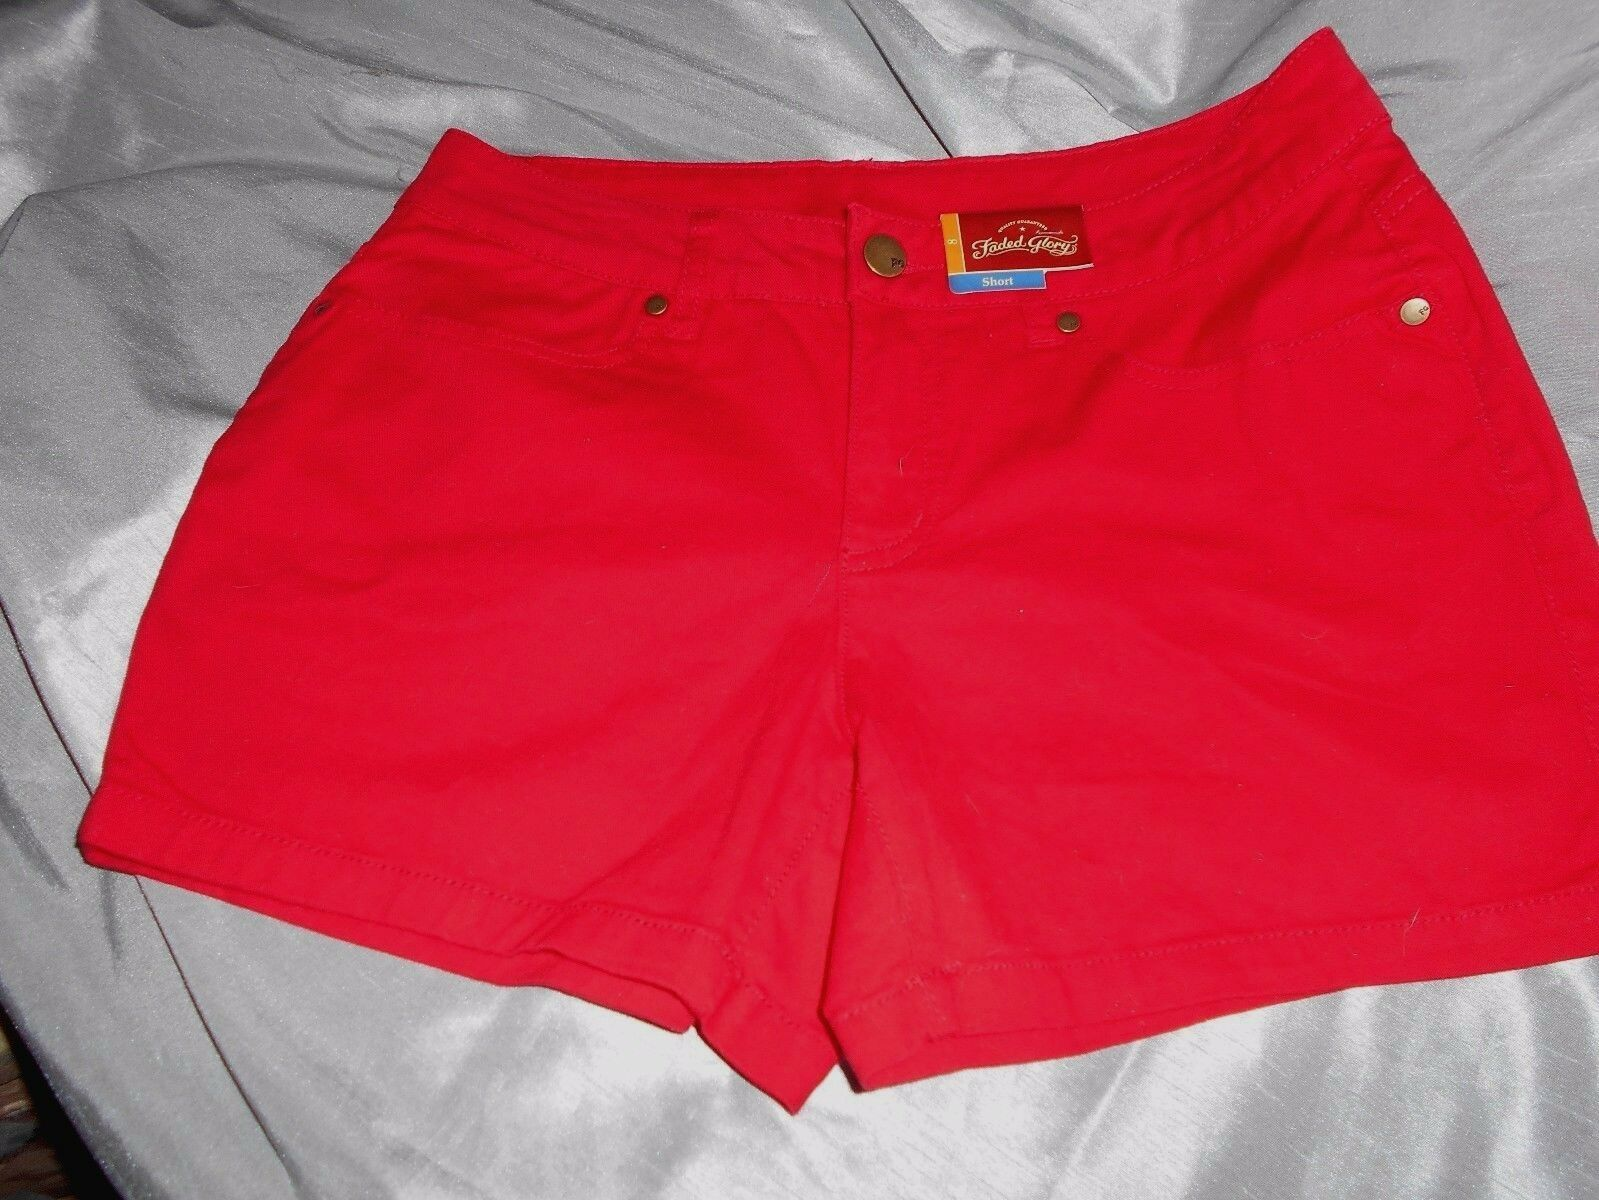 LADIES RED SHORT BY FADED GLORY   - YOU PICK SIZE - - $7.50